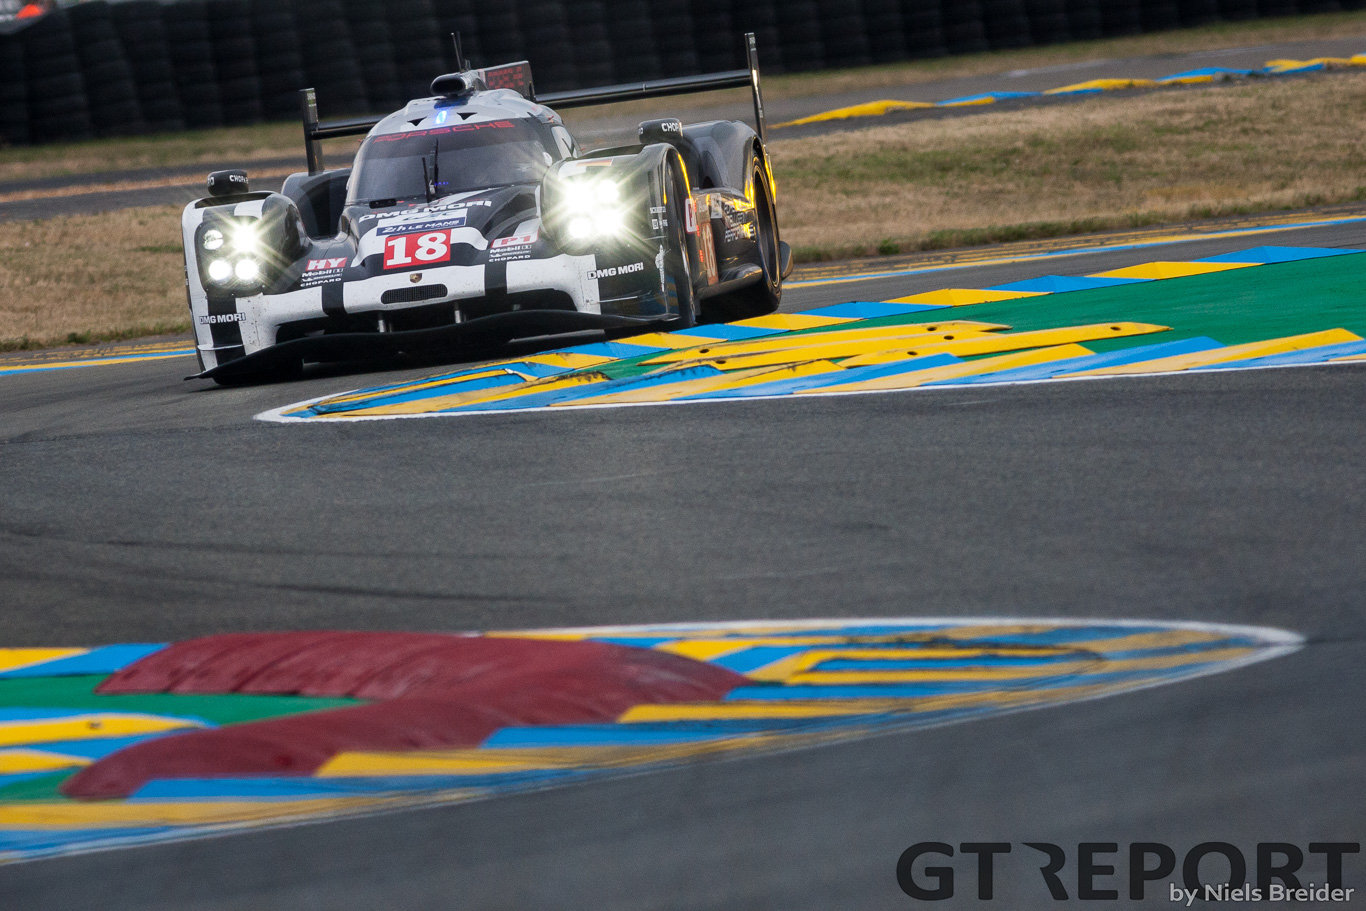 Day two at Le Mans